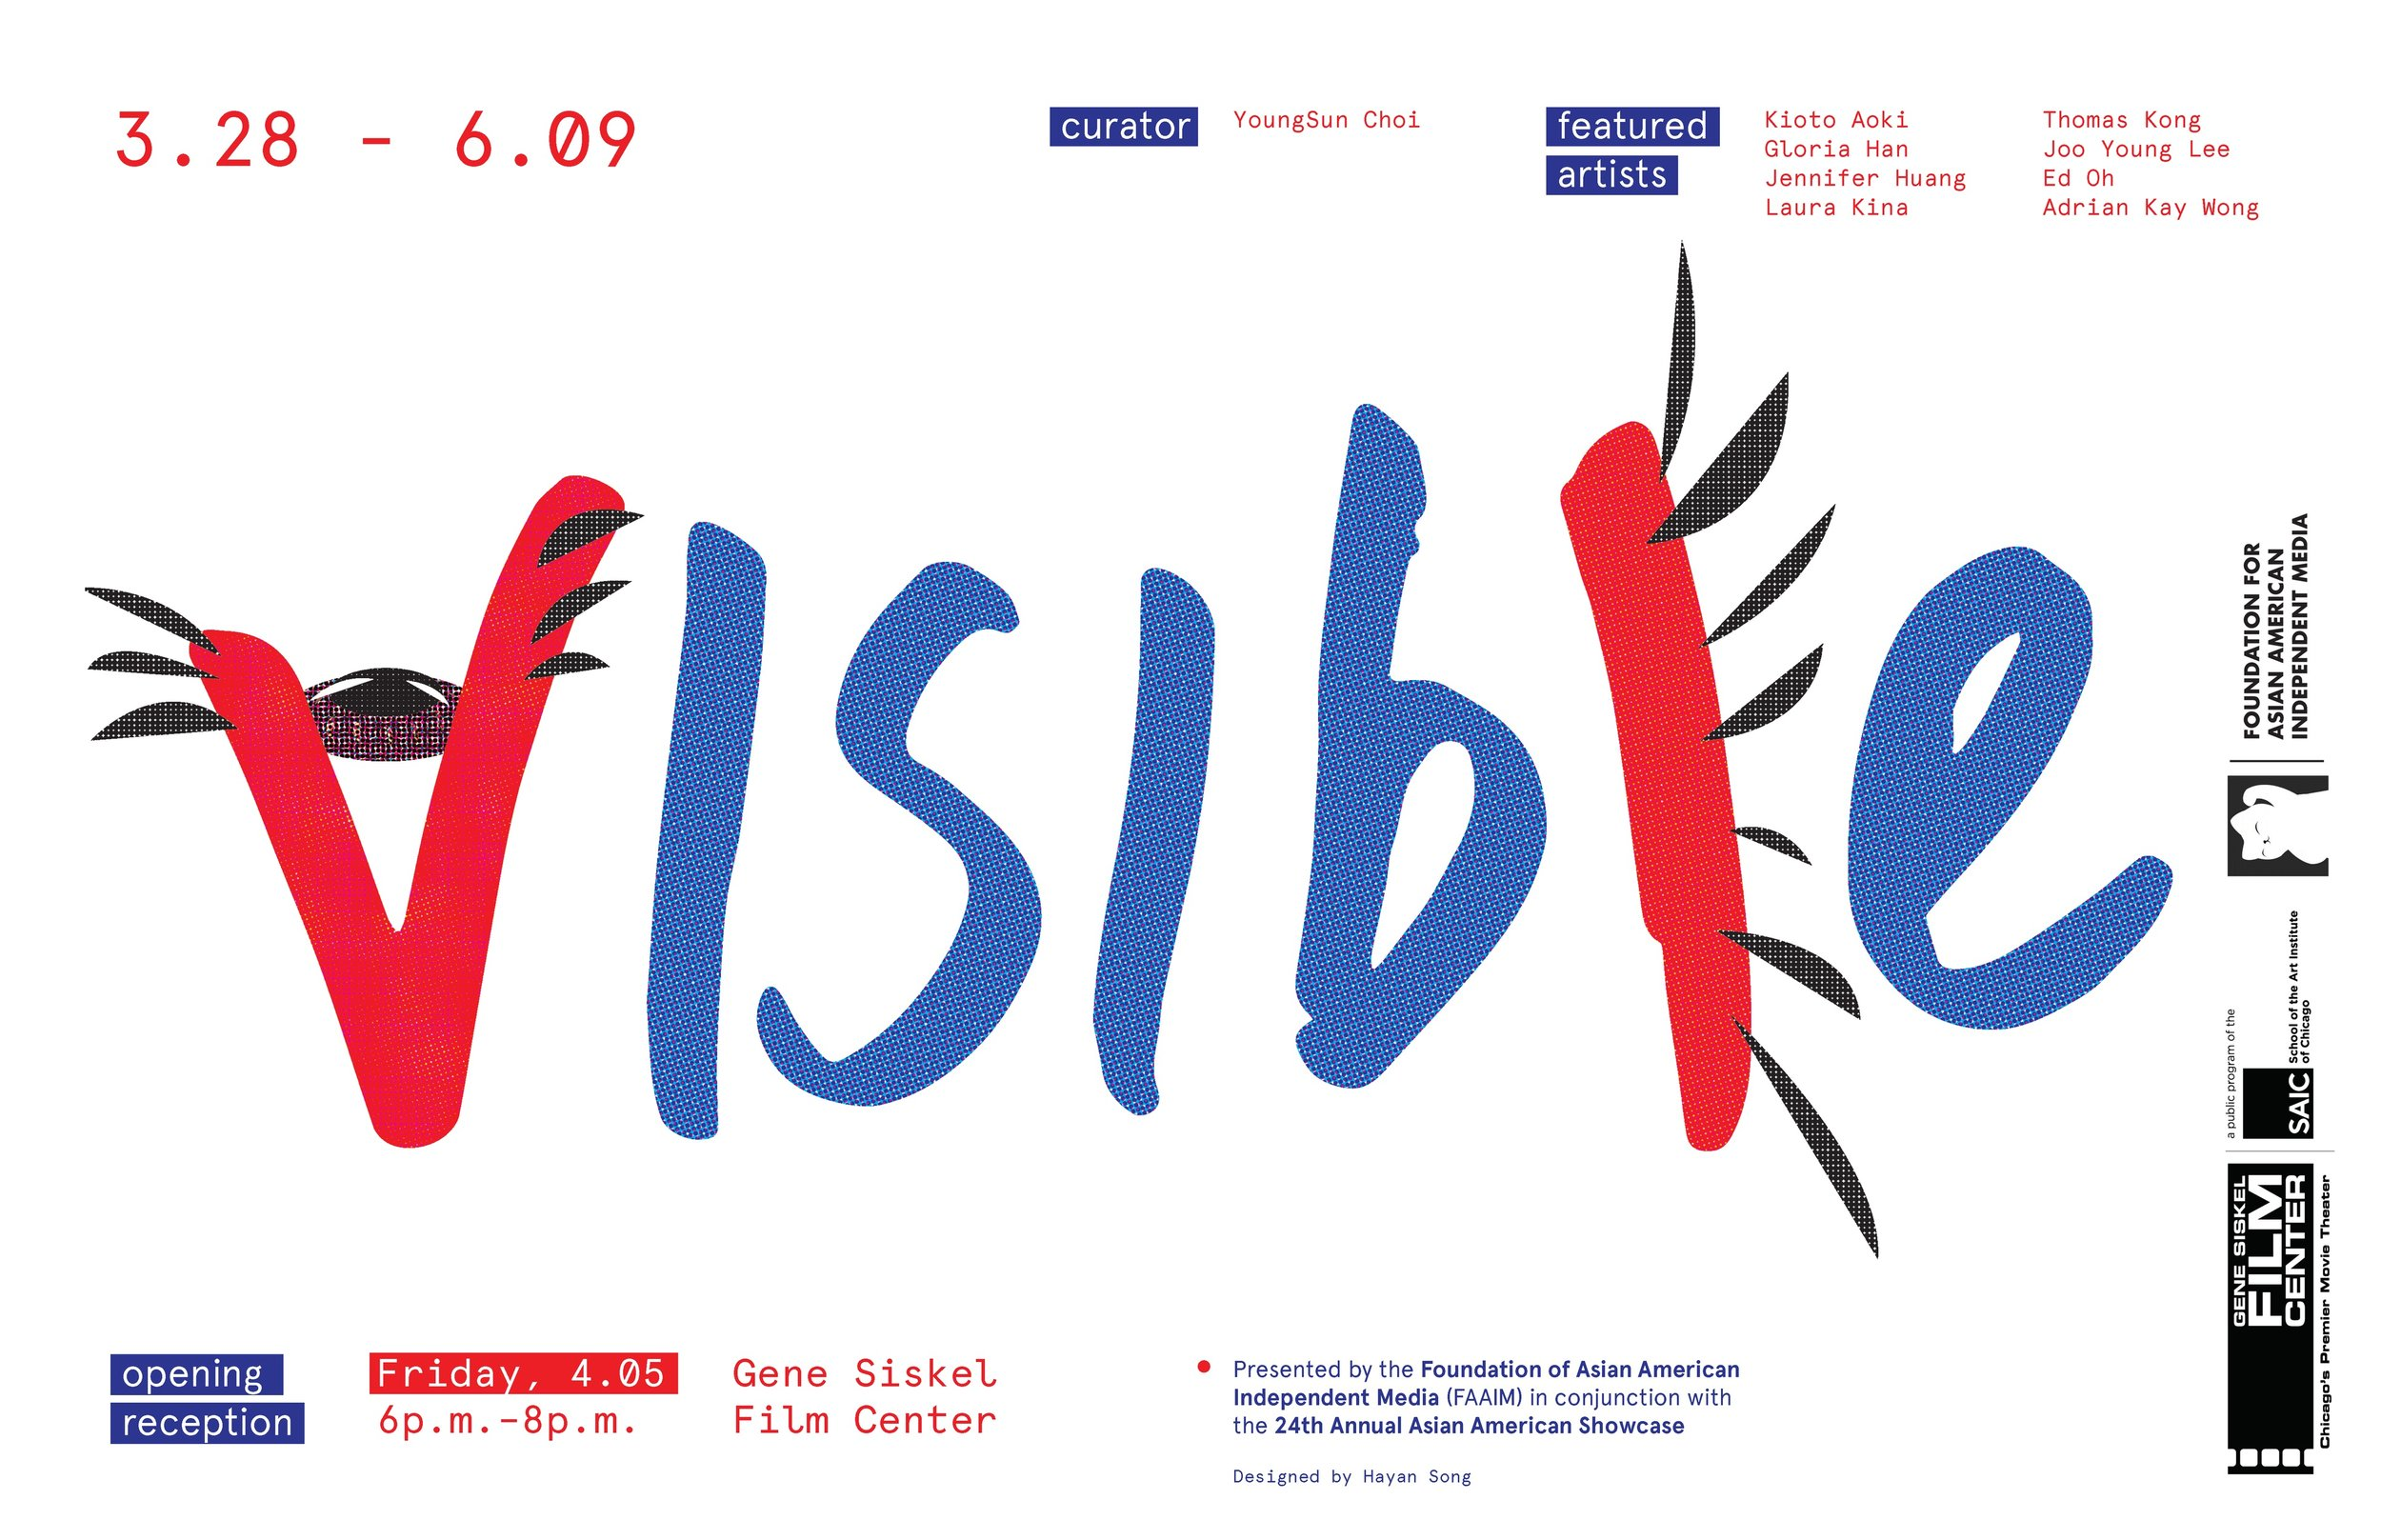 visible_poster_11by17.jpg